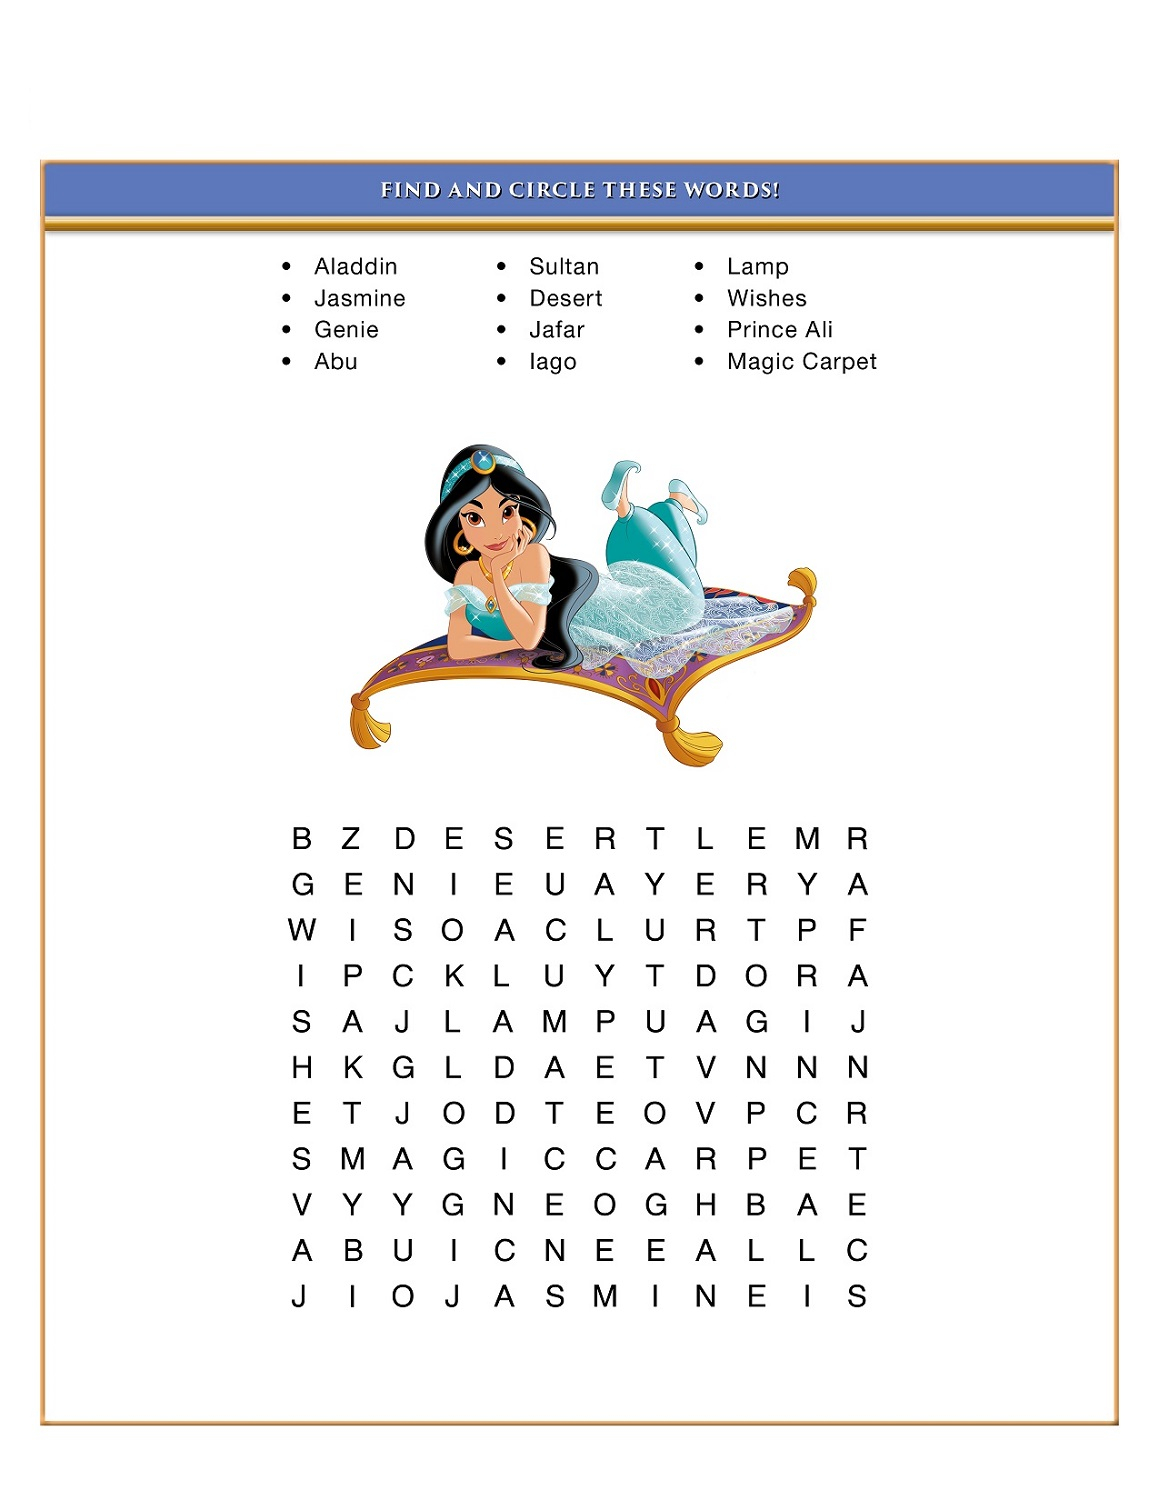 Disney Word Search Puzzles | Printable Shelter with regard to Free Disney Word Search